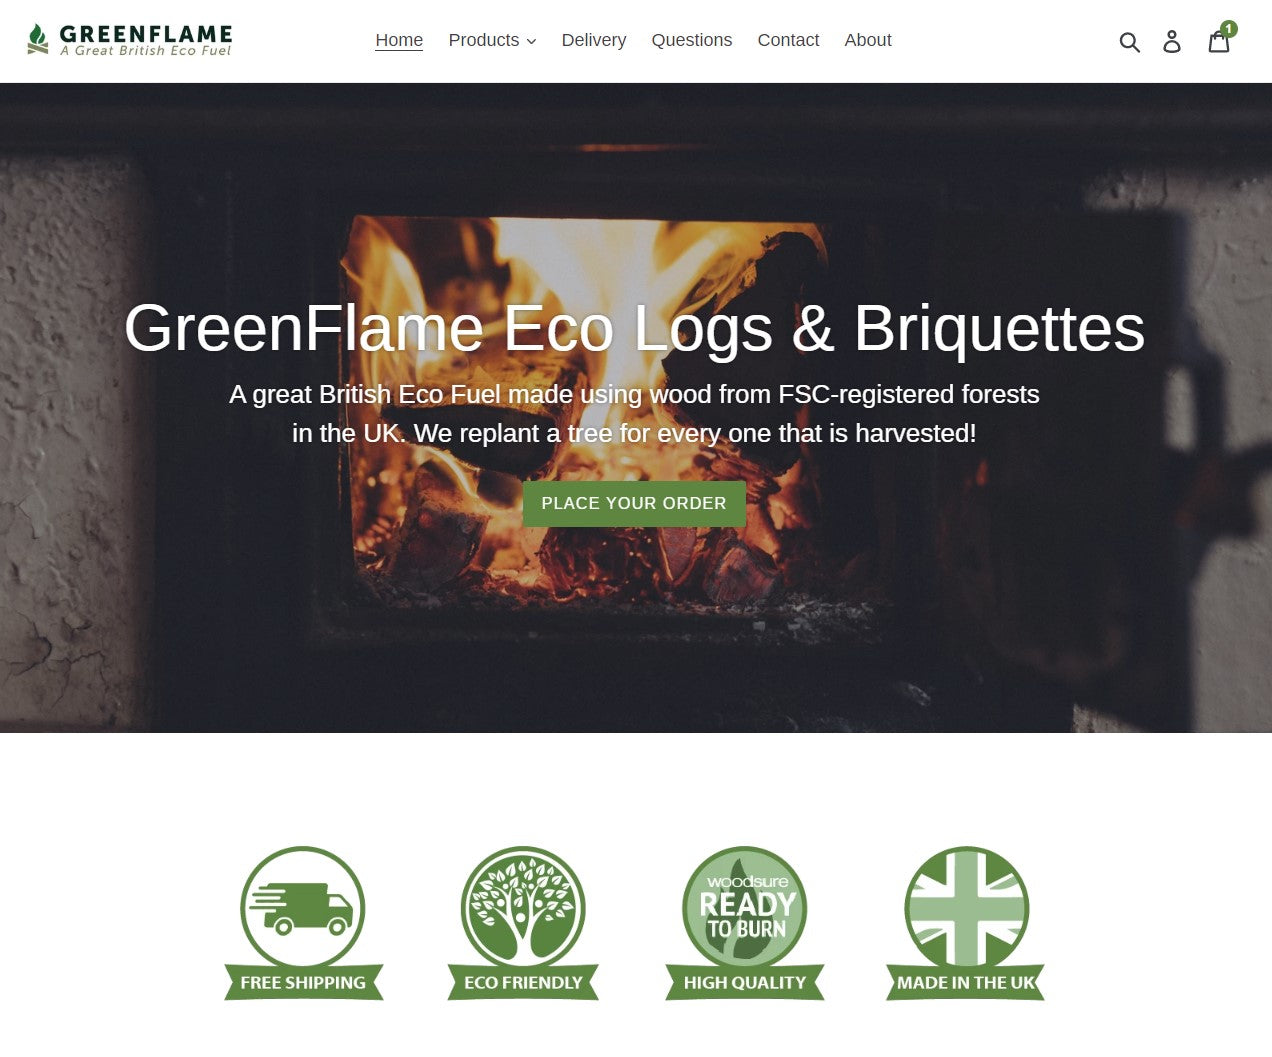 GreenFlame Eco Logs and Briquettes